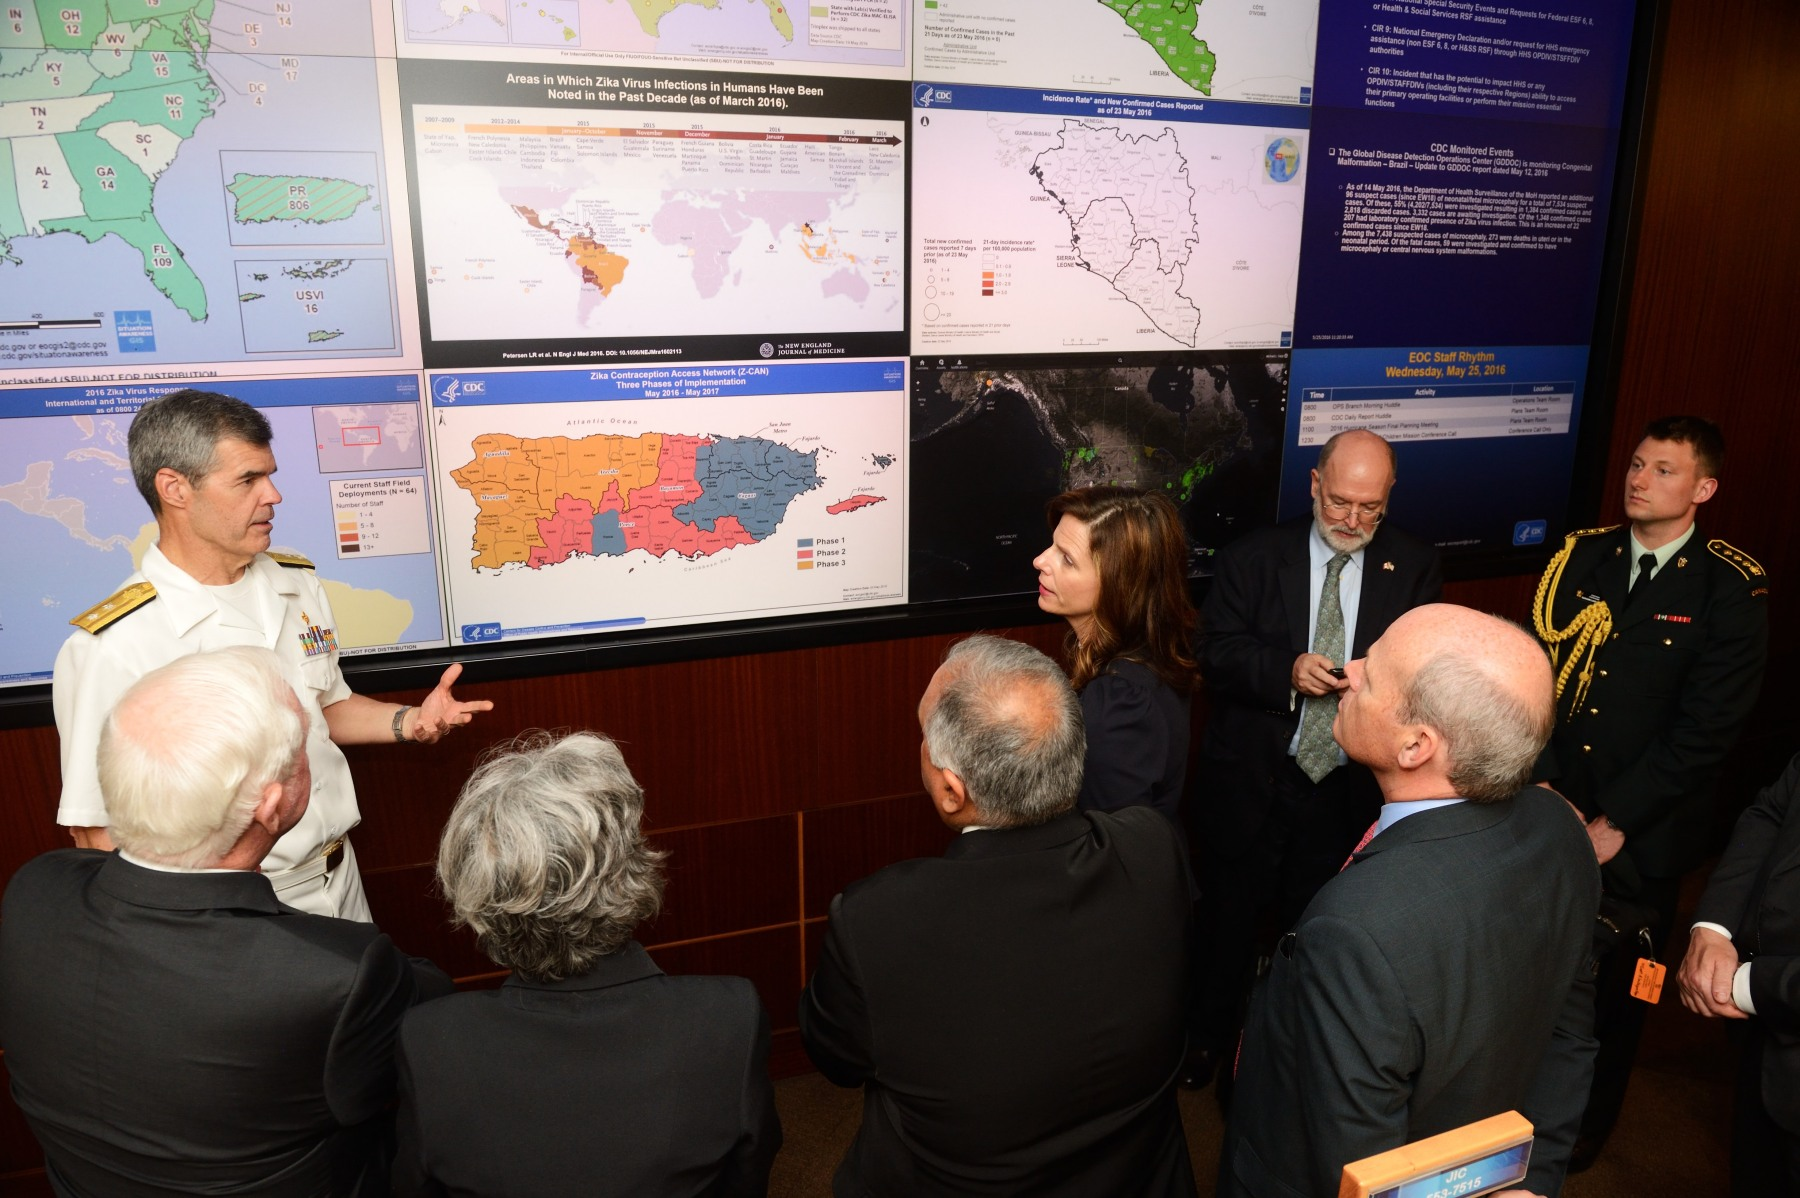 The visit concluded with a tour of CDC's Emergency Operations Center, which collaborated closely with PHAC during the Ebola outbreak to inform Canadians of research and medical prevention measures that required implementation.